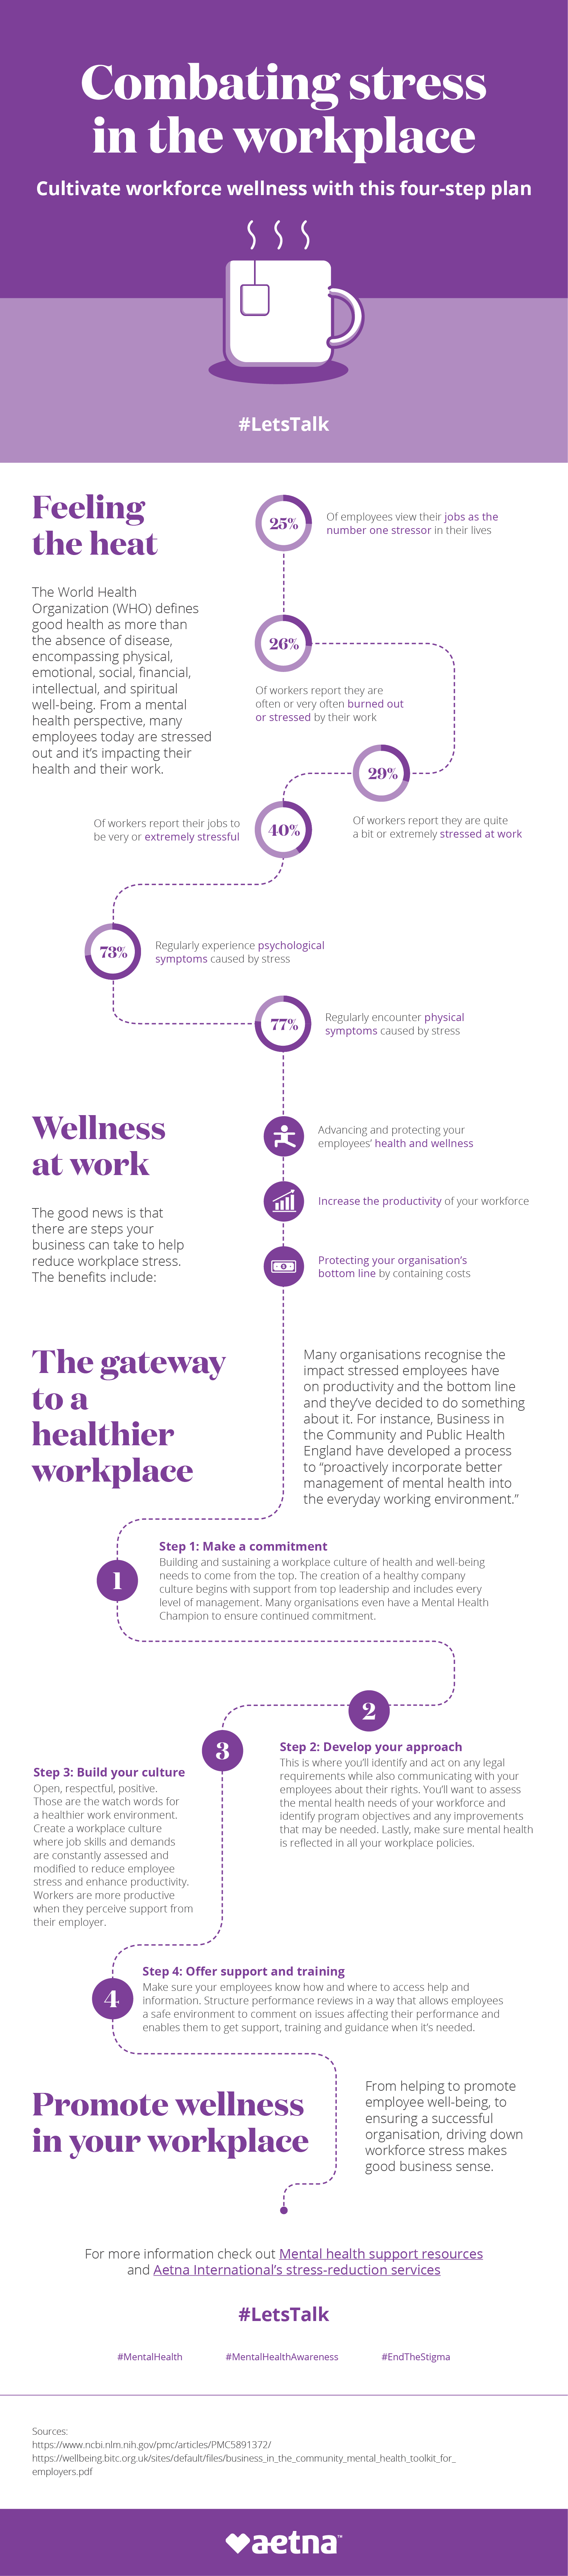 World Mental Health Day Infographic About Corporate Best Practices